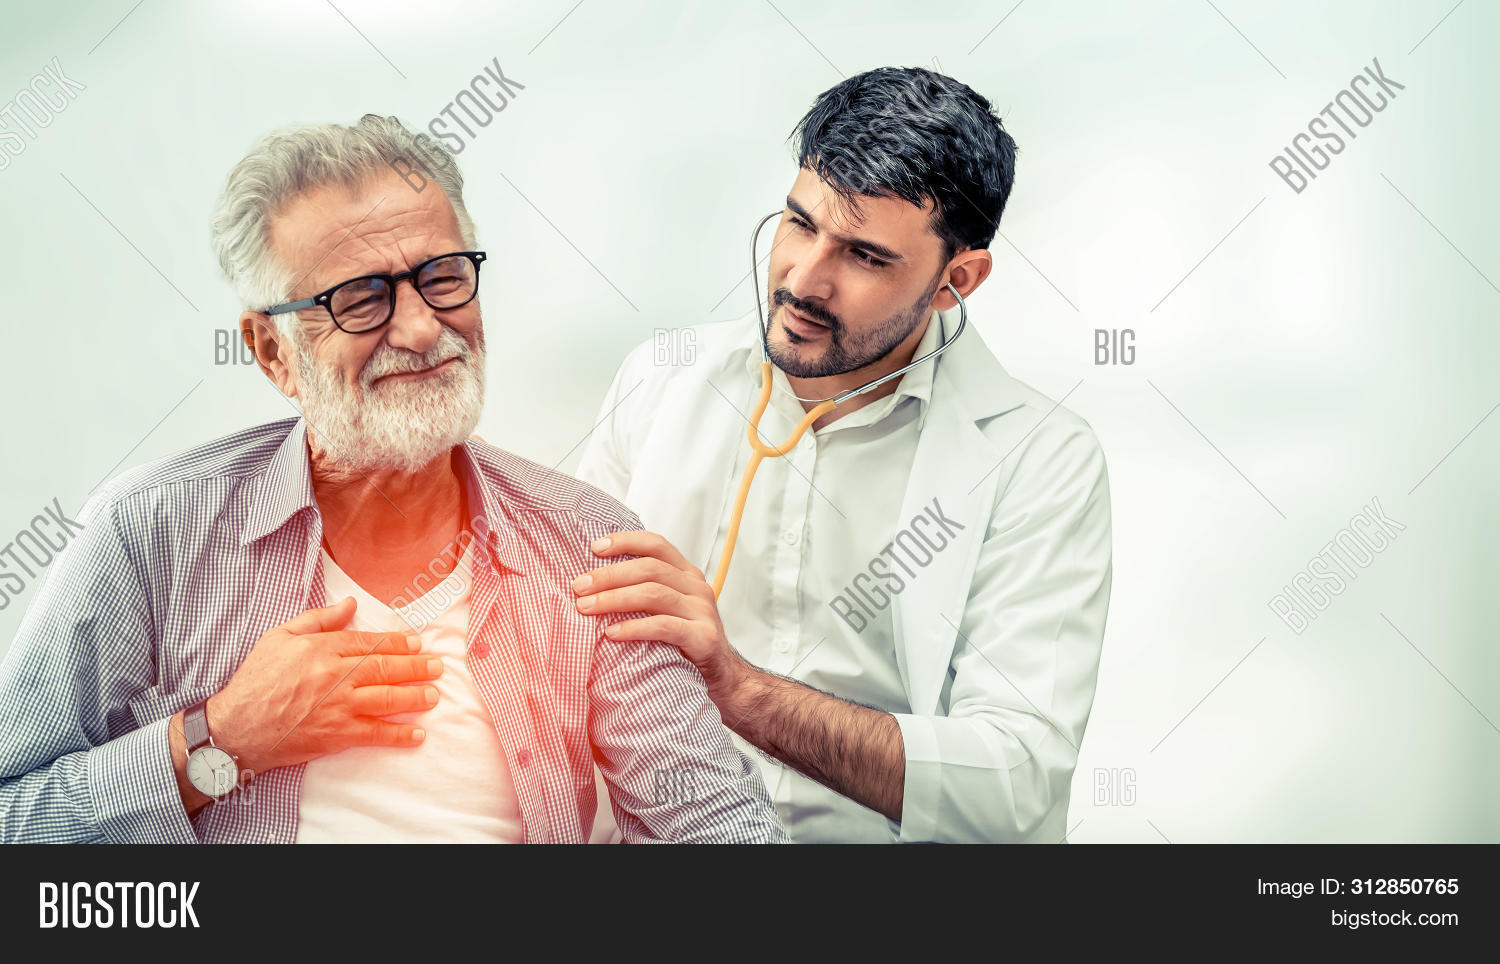 cancer,care,check,checking,chest,clinic,doctor,doctoral,doctorate,doctored,examining,general,gp,happy,health,healthcare,heart,hospital,hospitalization,inpatient,lung,male,man,mature,medical,medically,outpatient,pain,patient,patiently,premedical,problem,senior,sick,sickness,smile,smiling,staff,stethoscope,talking,technology,treatment,unhappy,up,visit,ward,worker,working,young